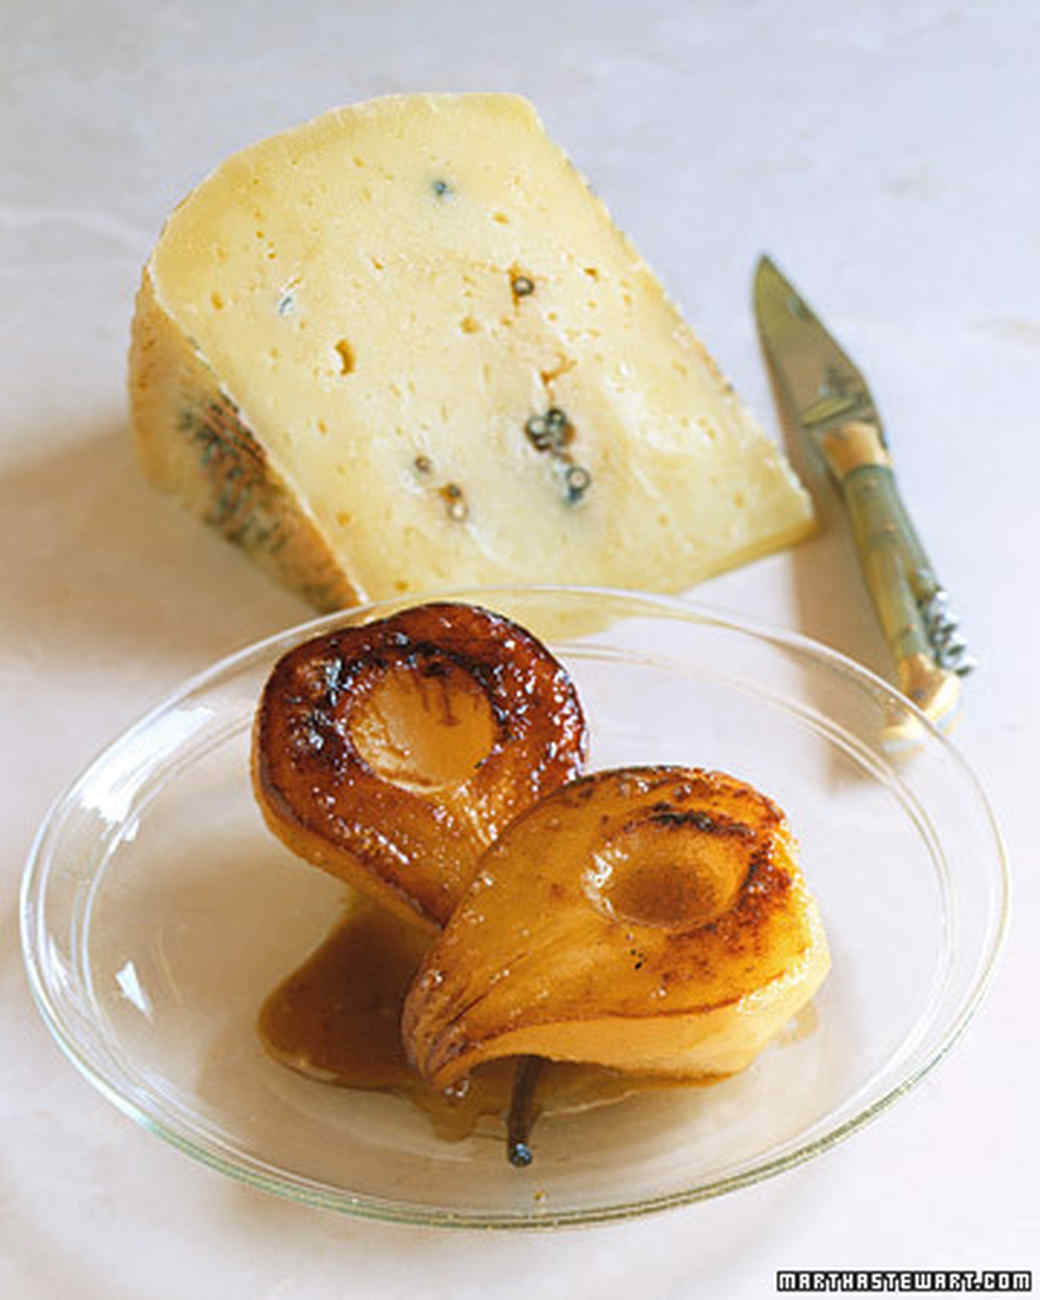 Roasted Pears with Pecorino Cheese